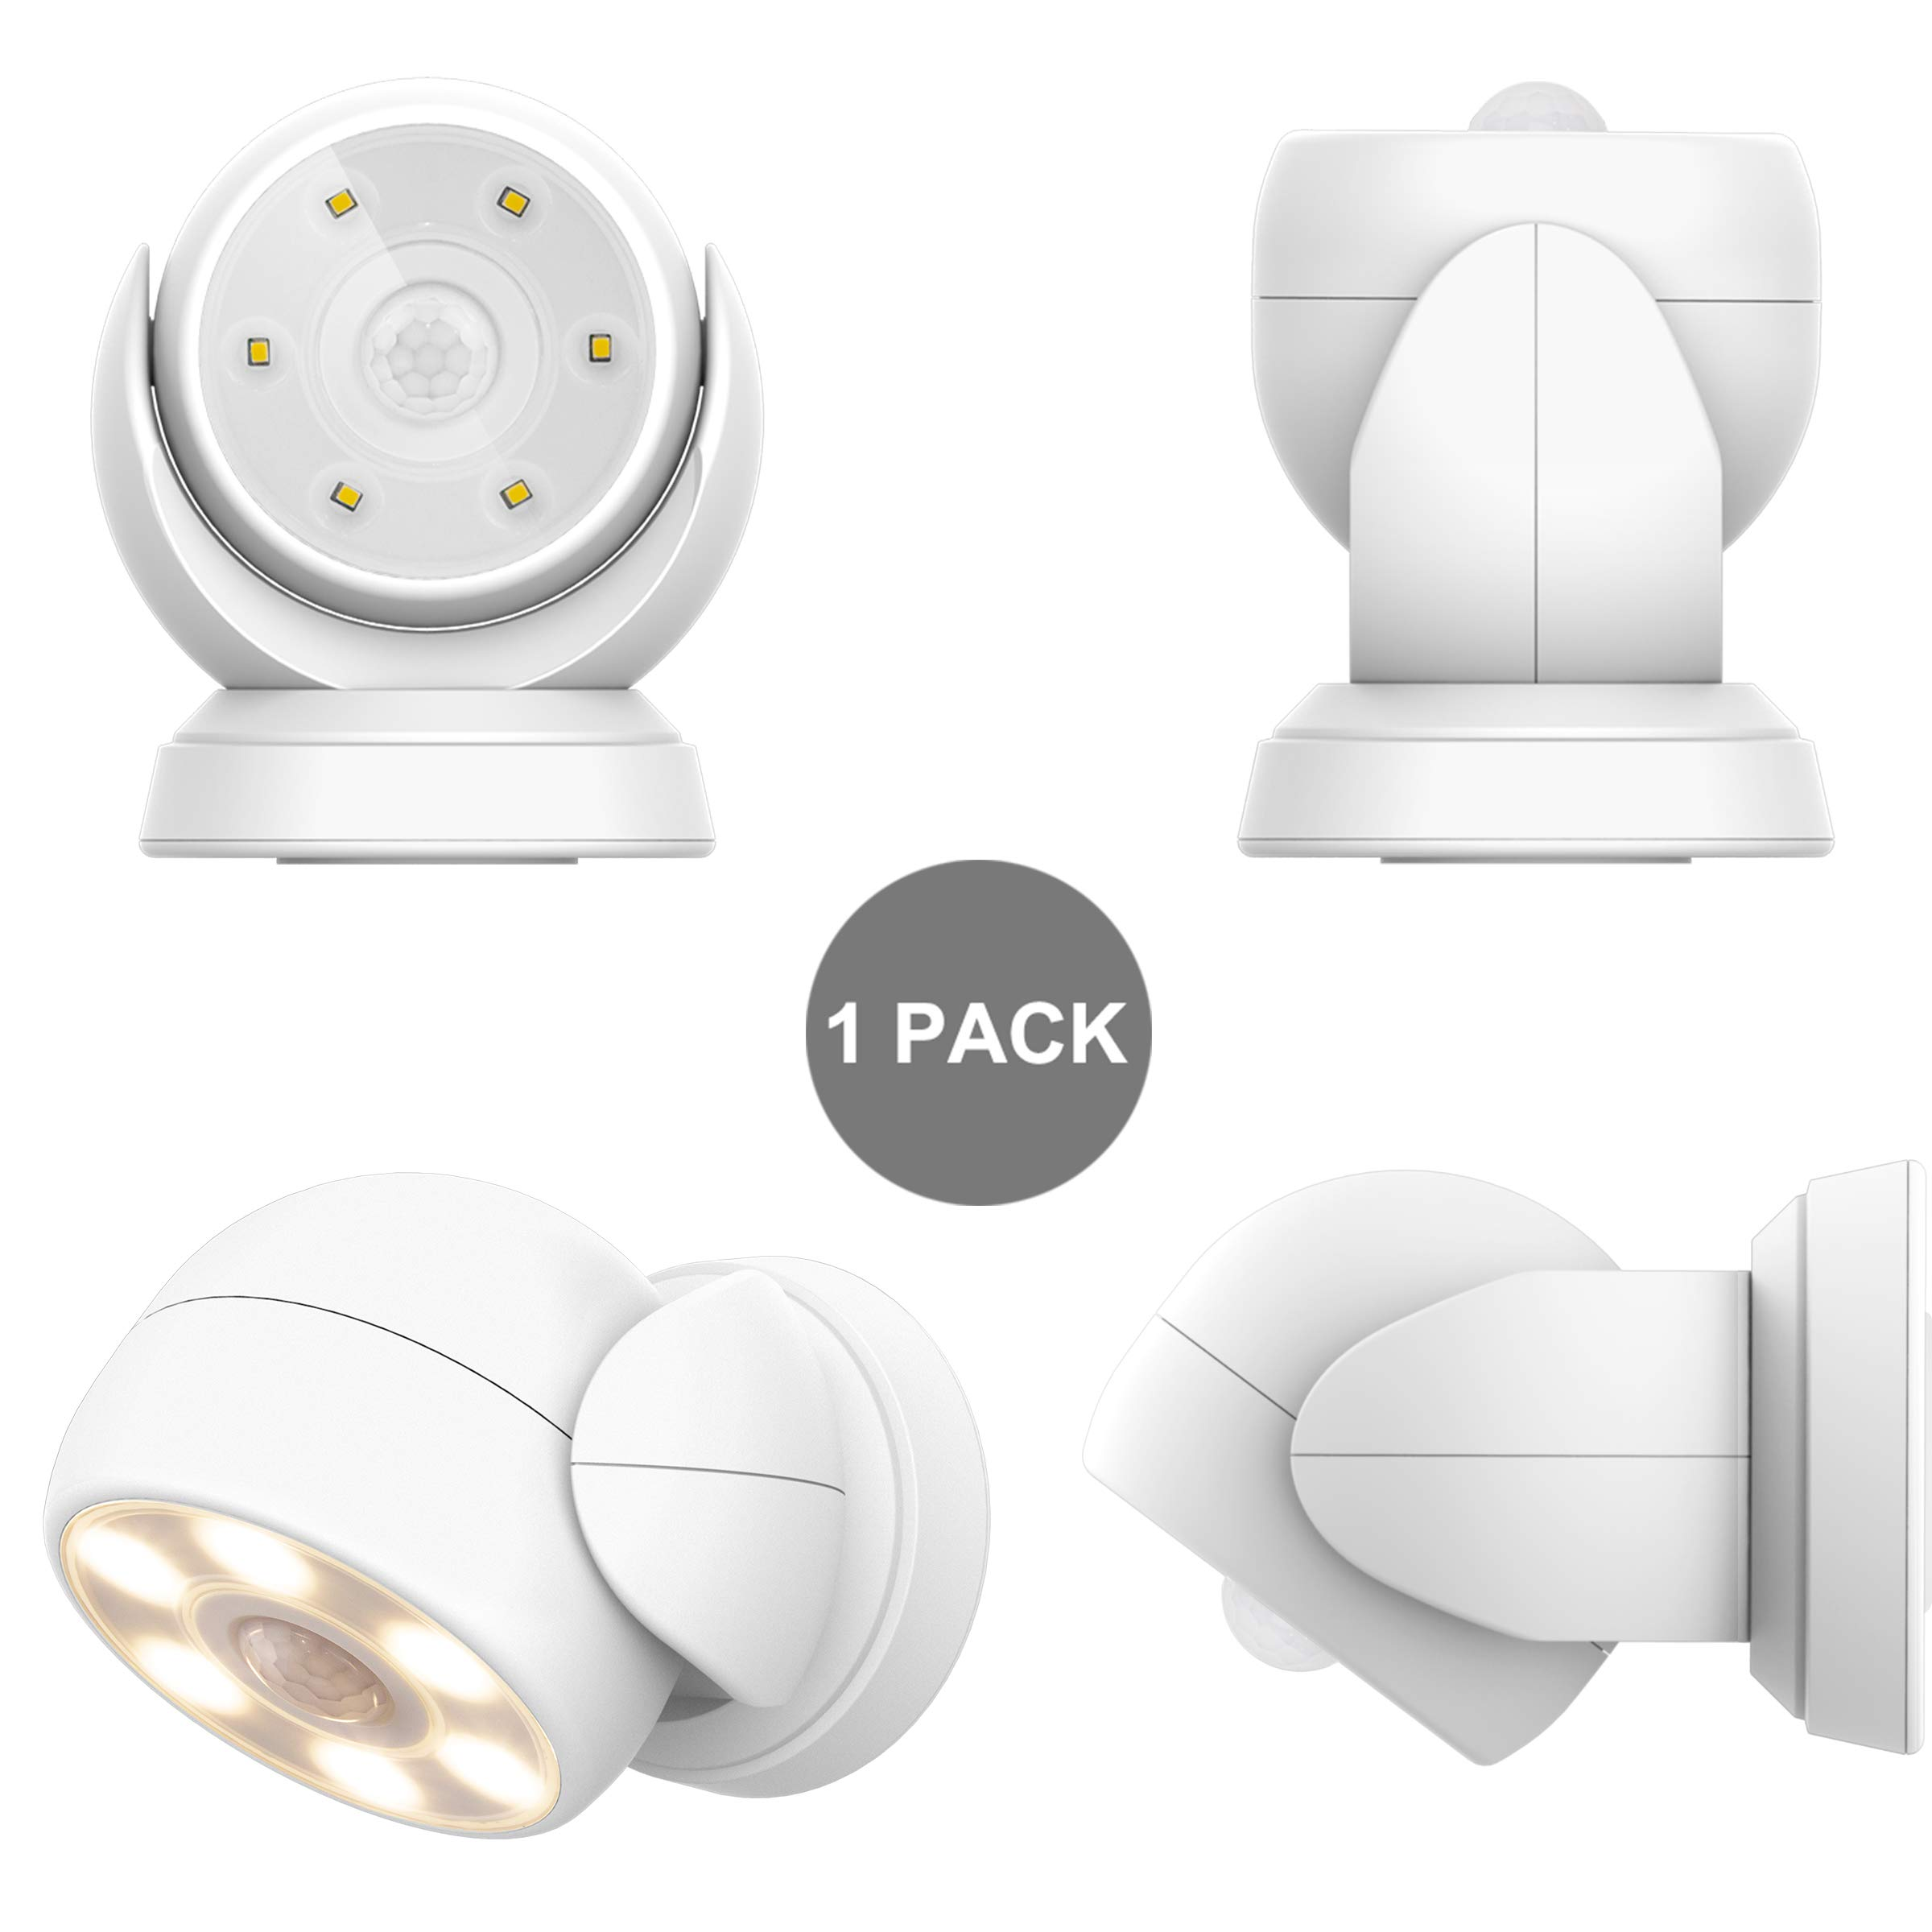 HONWELL Motion Sensor Light Outdoor Battery Operated Wireless Waterproof Spotlight Motion Security Night Light, Light Sensor Auto On Off for Porch Stair Ceiling Hallway Garage Wall Shed Patio (1Pack) by HONWELL